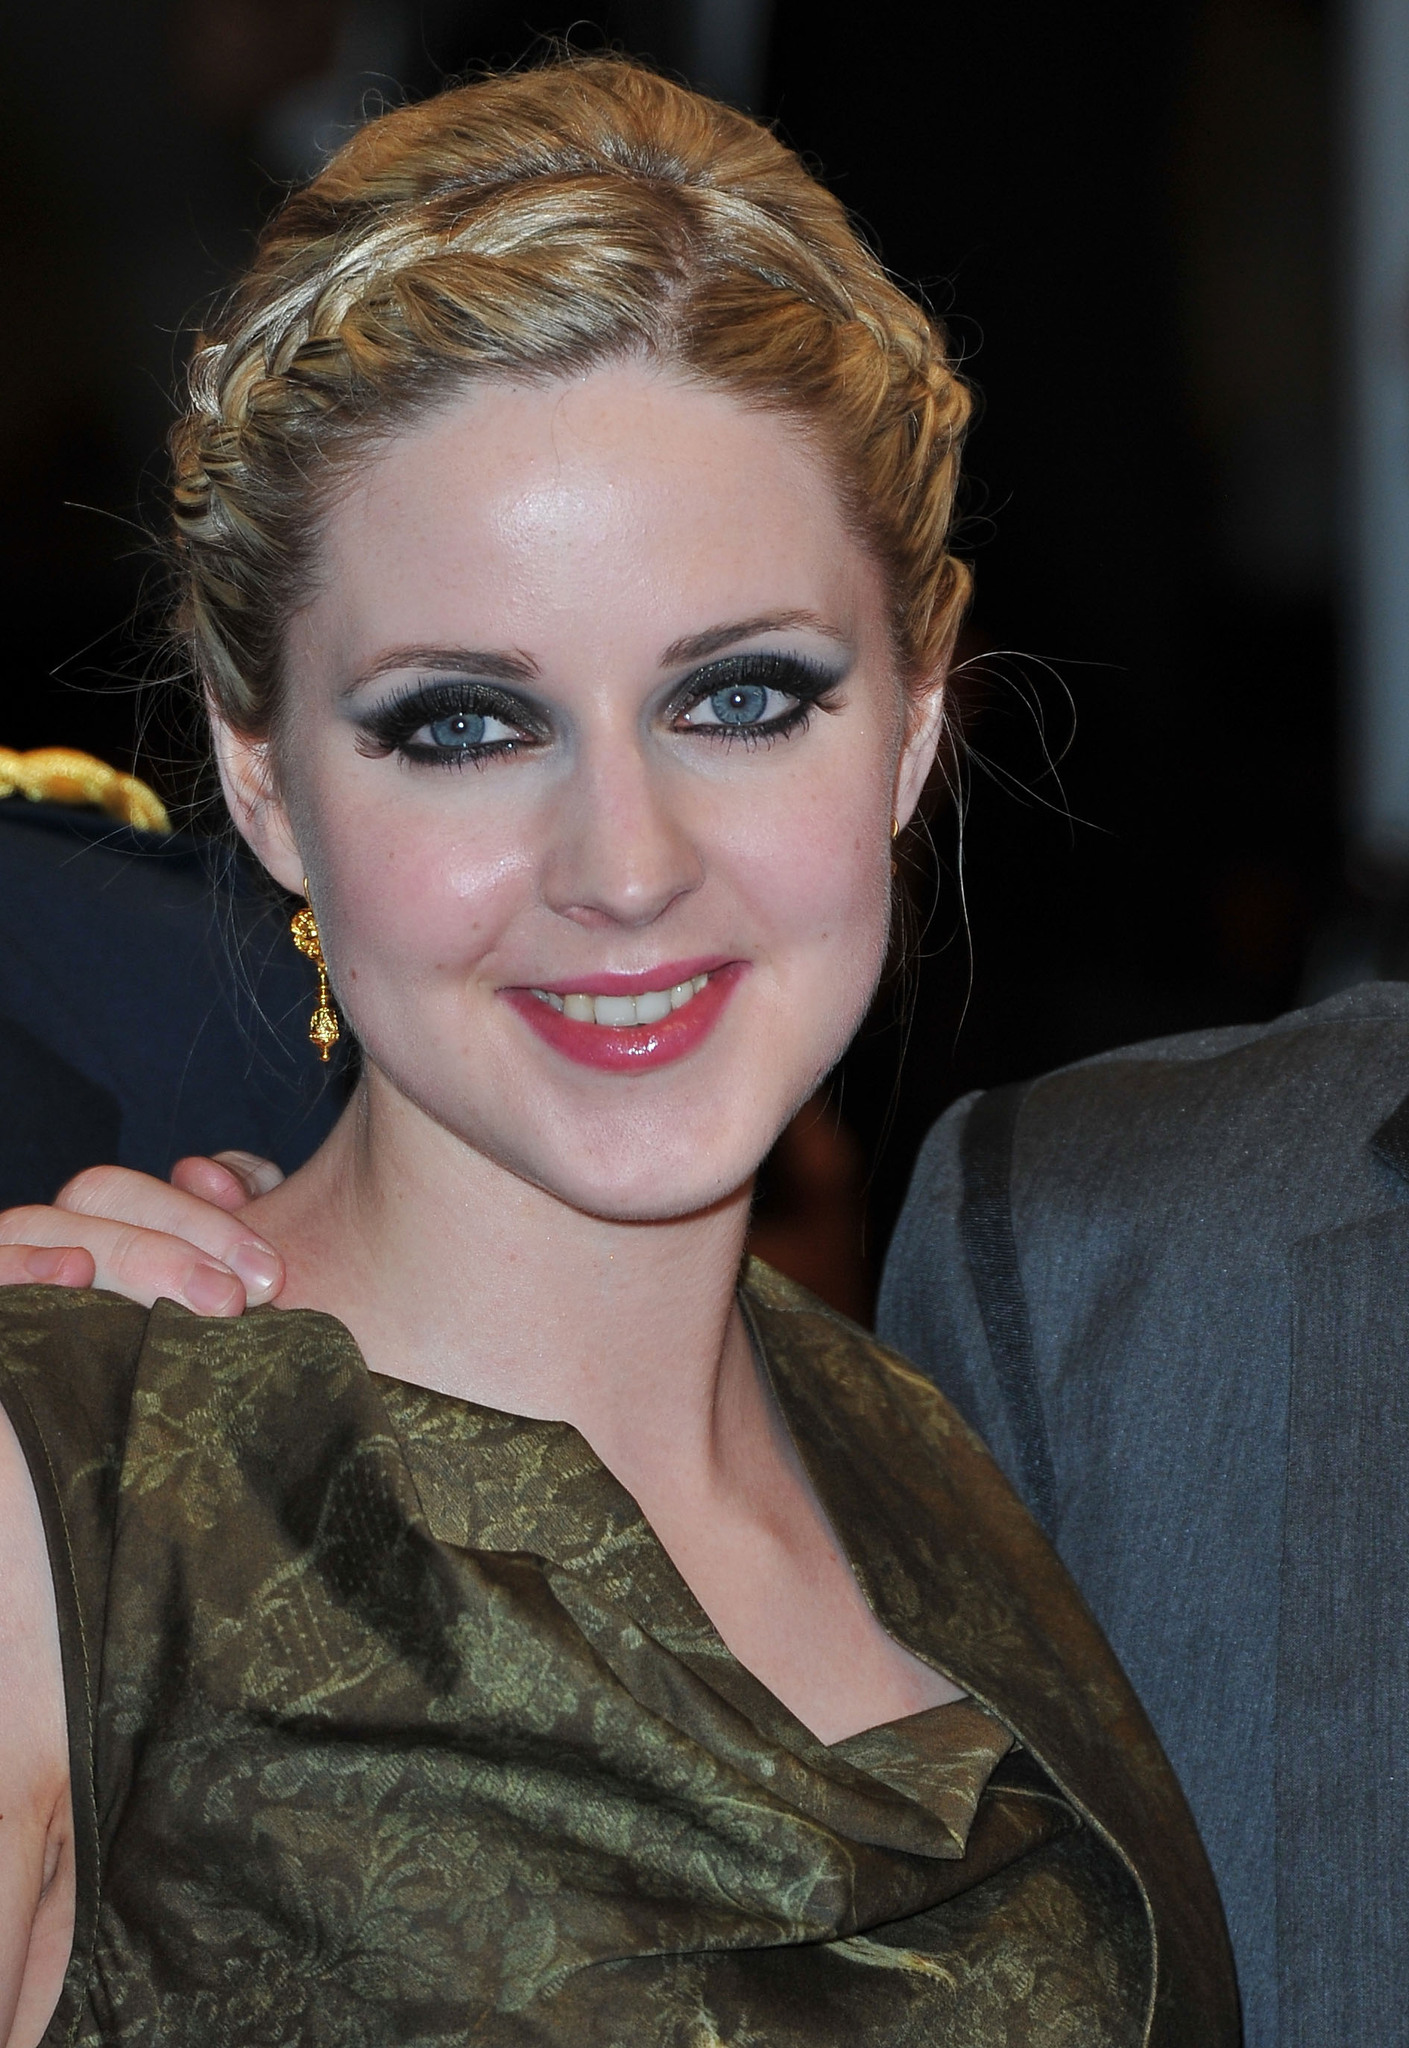 Siobhan Reilly at an event for The Angels' Share (2012)